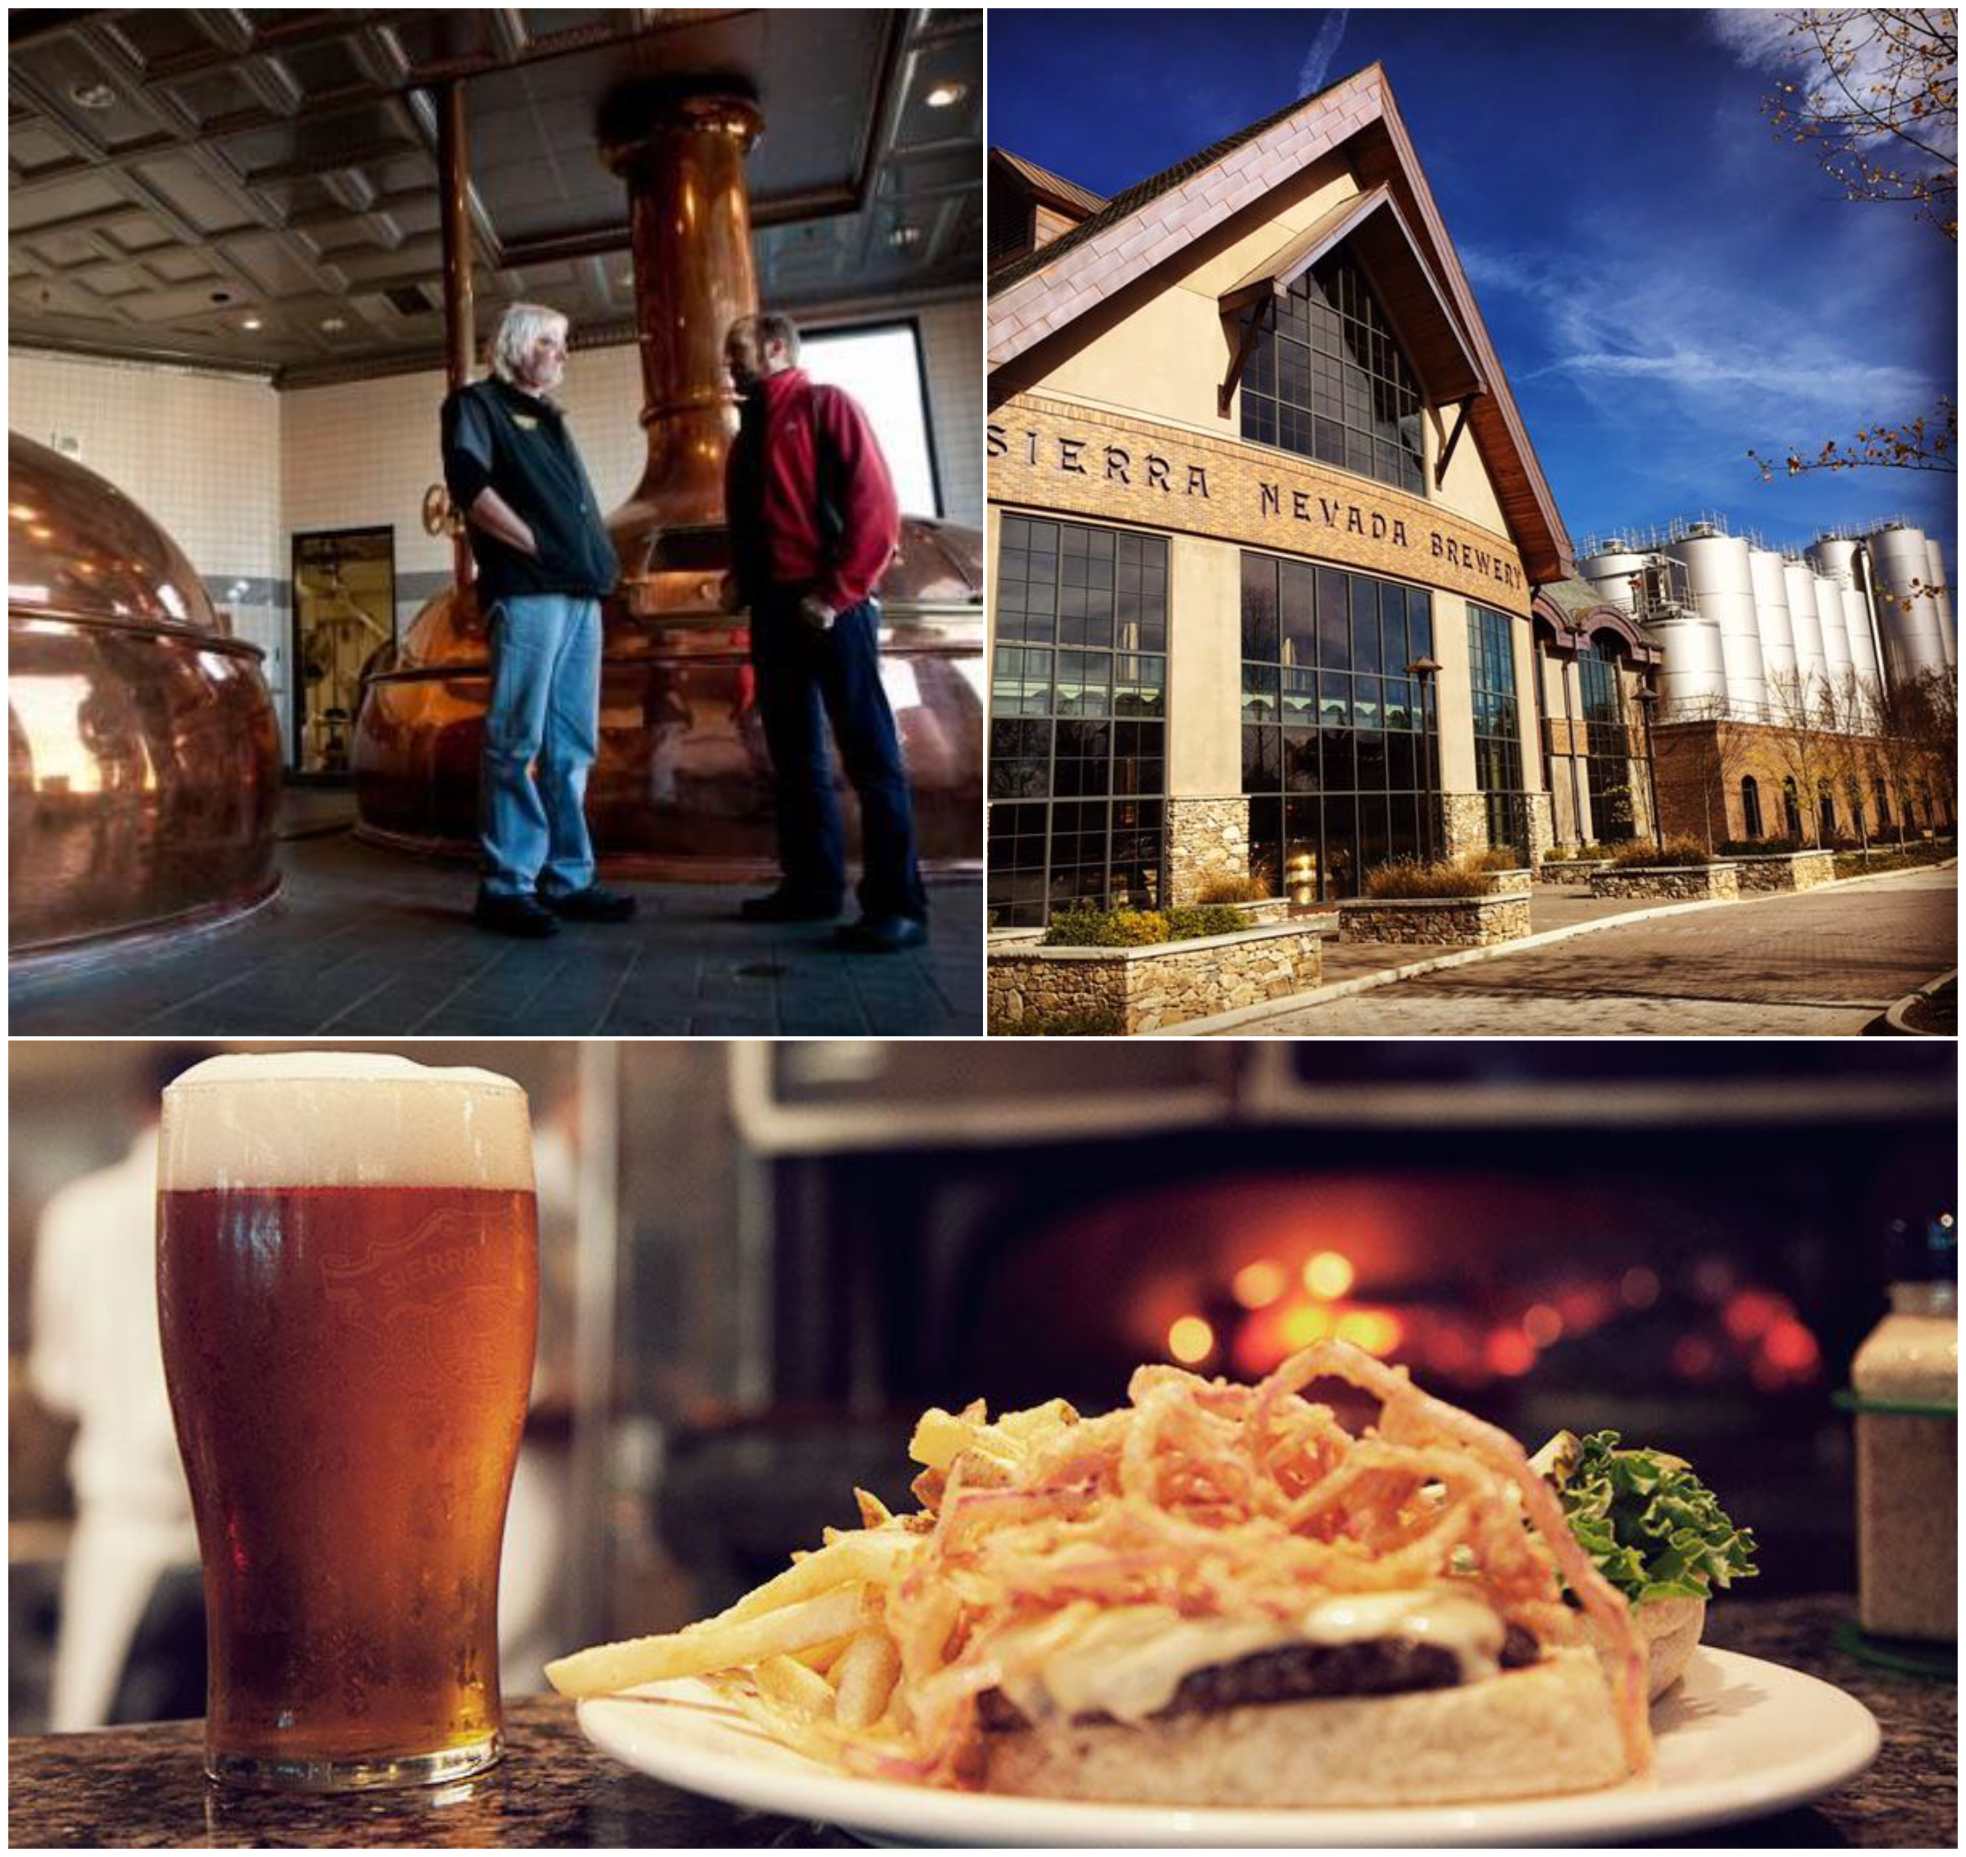 Sierra Nevada | Tour, beer tasting, appetizers and more!